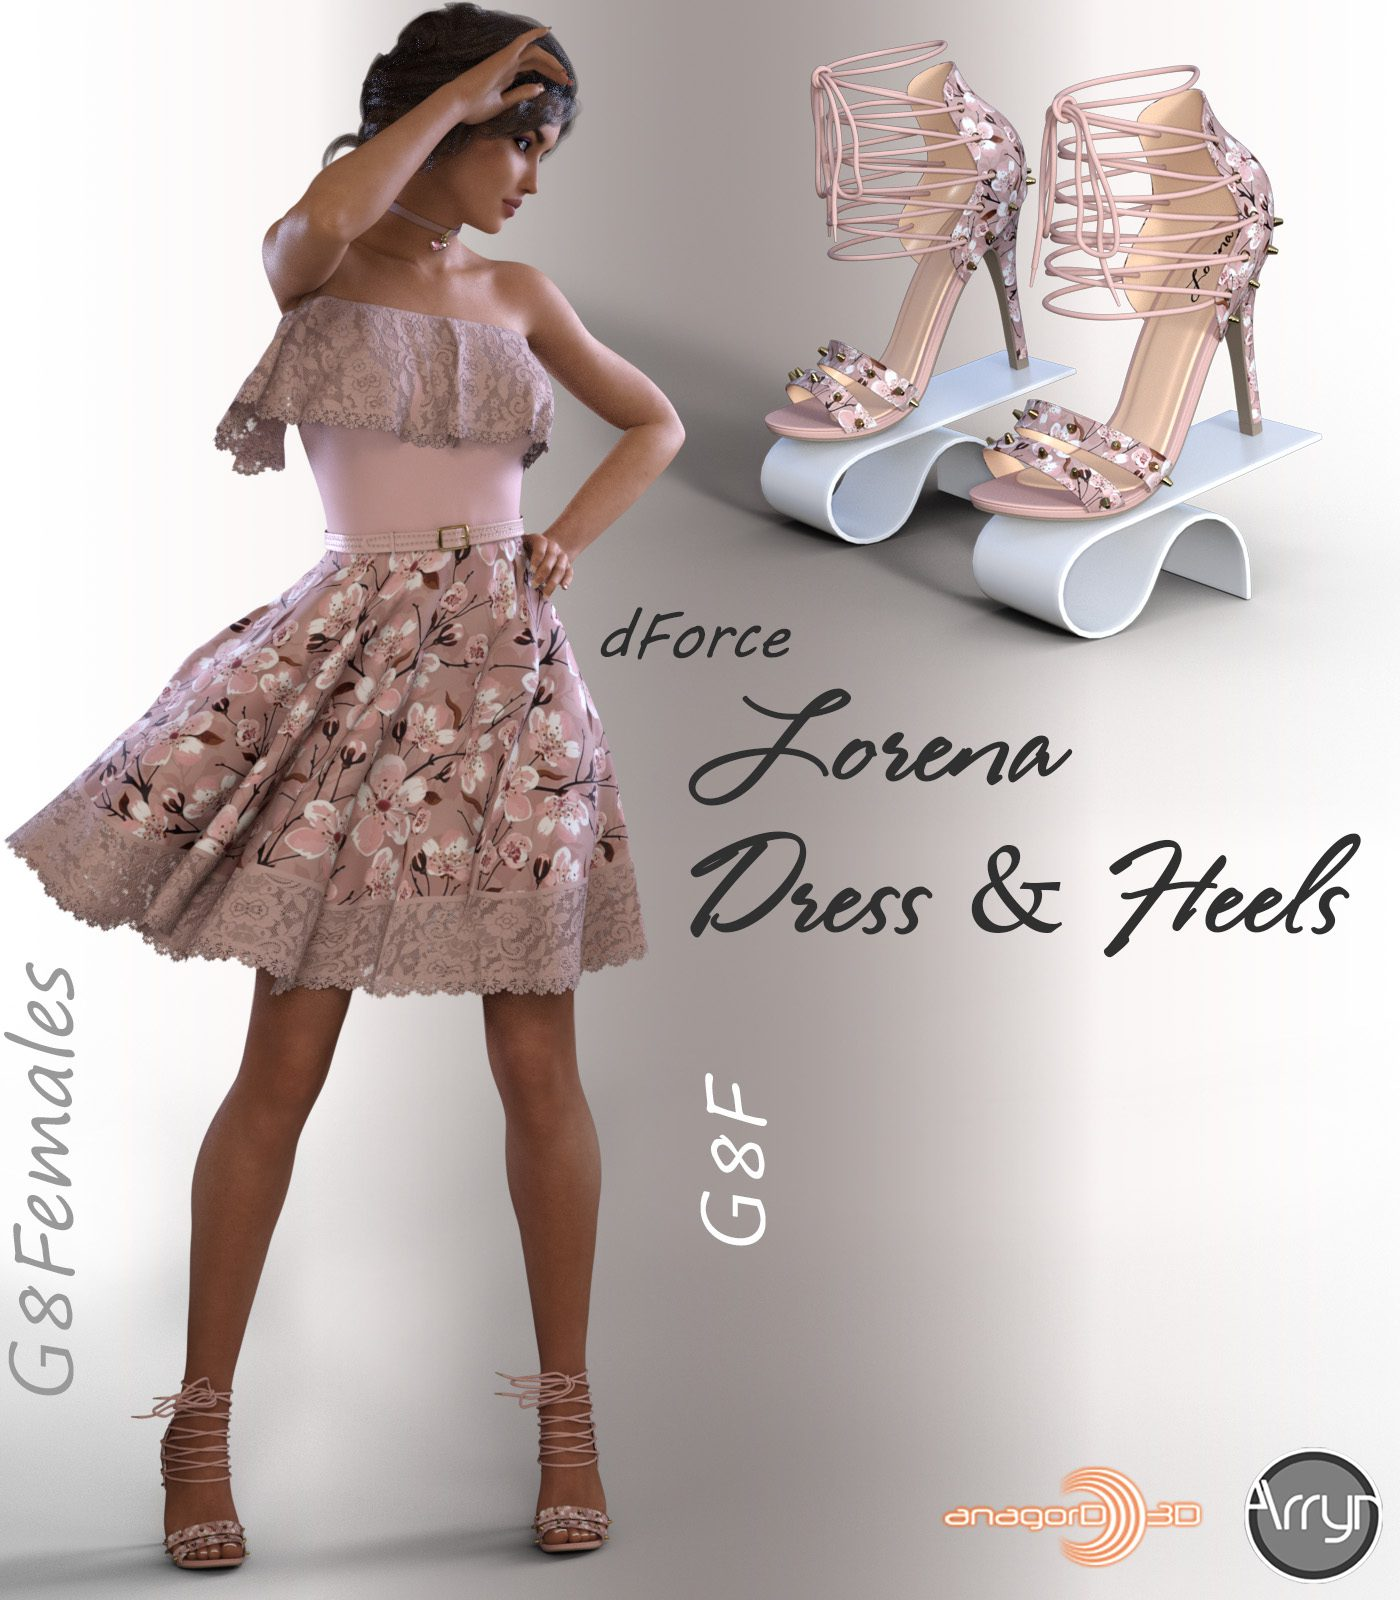 dForce Lorena Dress and Footwear Outfit for G8F_DAZ3D下载站